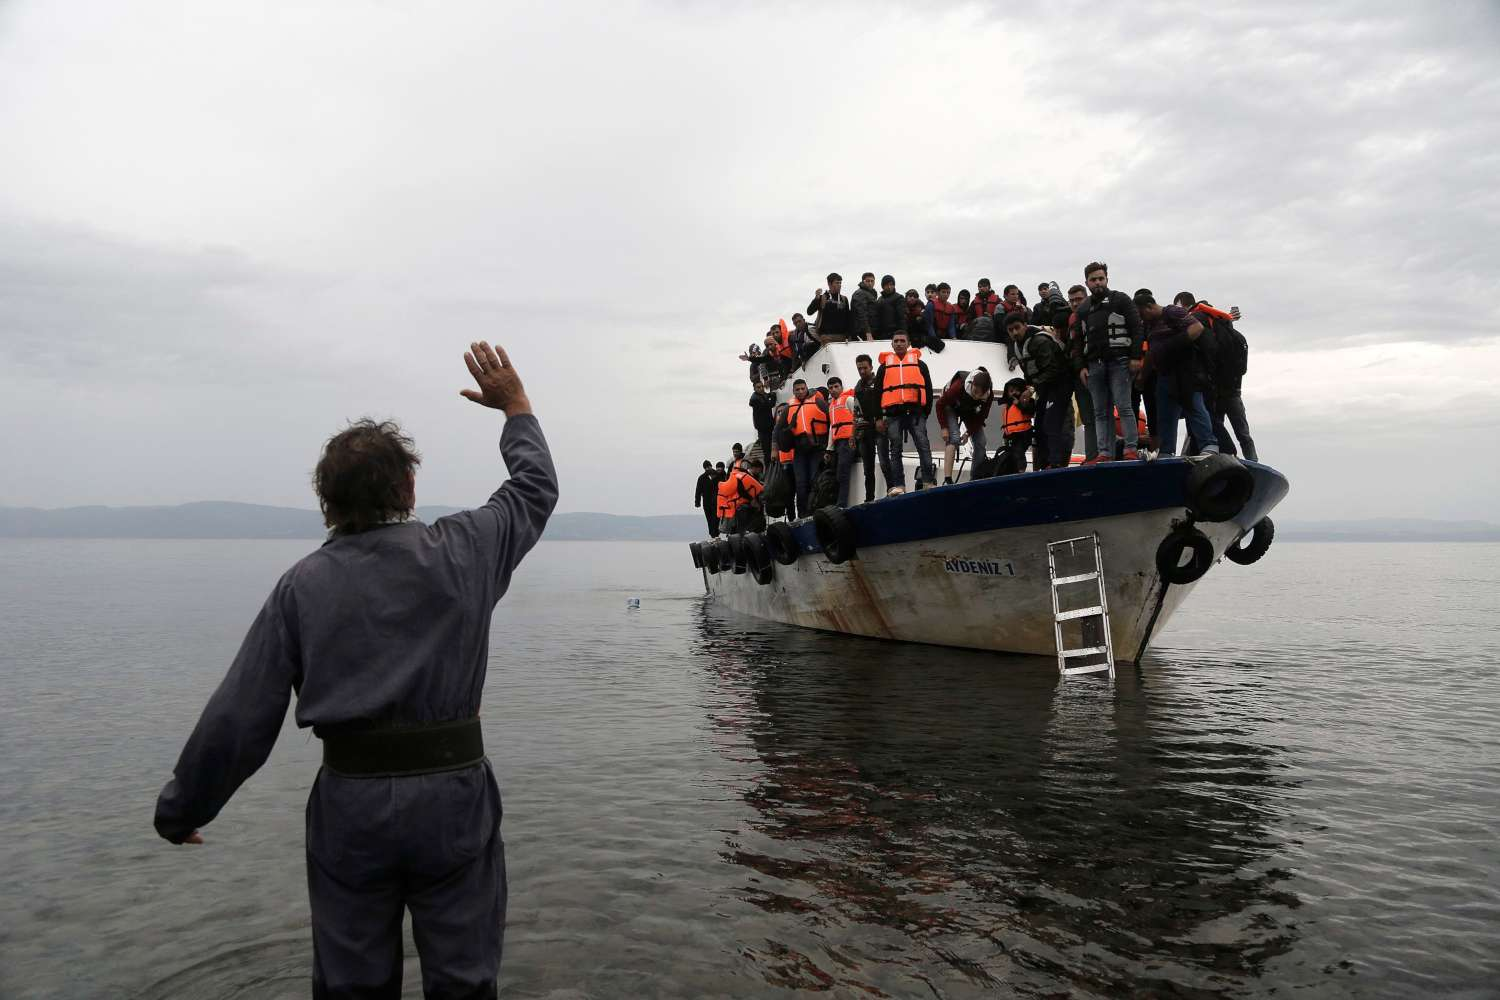 EU Migration Pact Echoes Anti-Immigration Governments